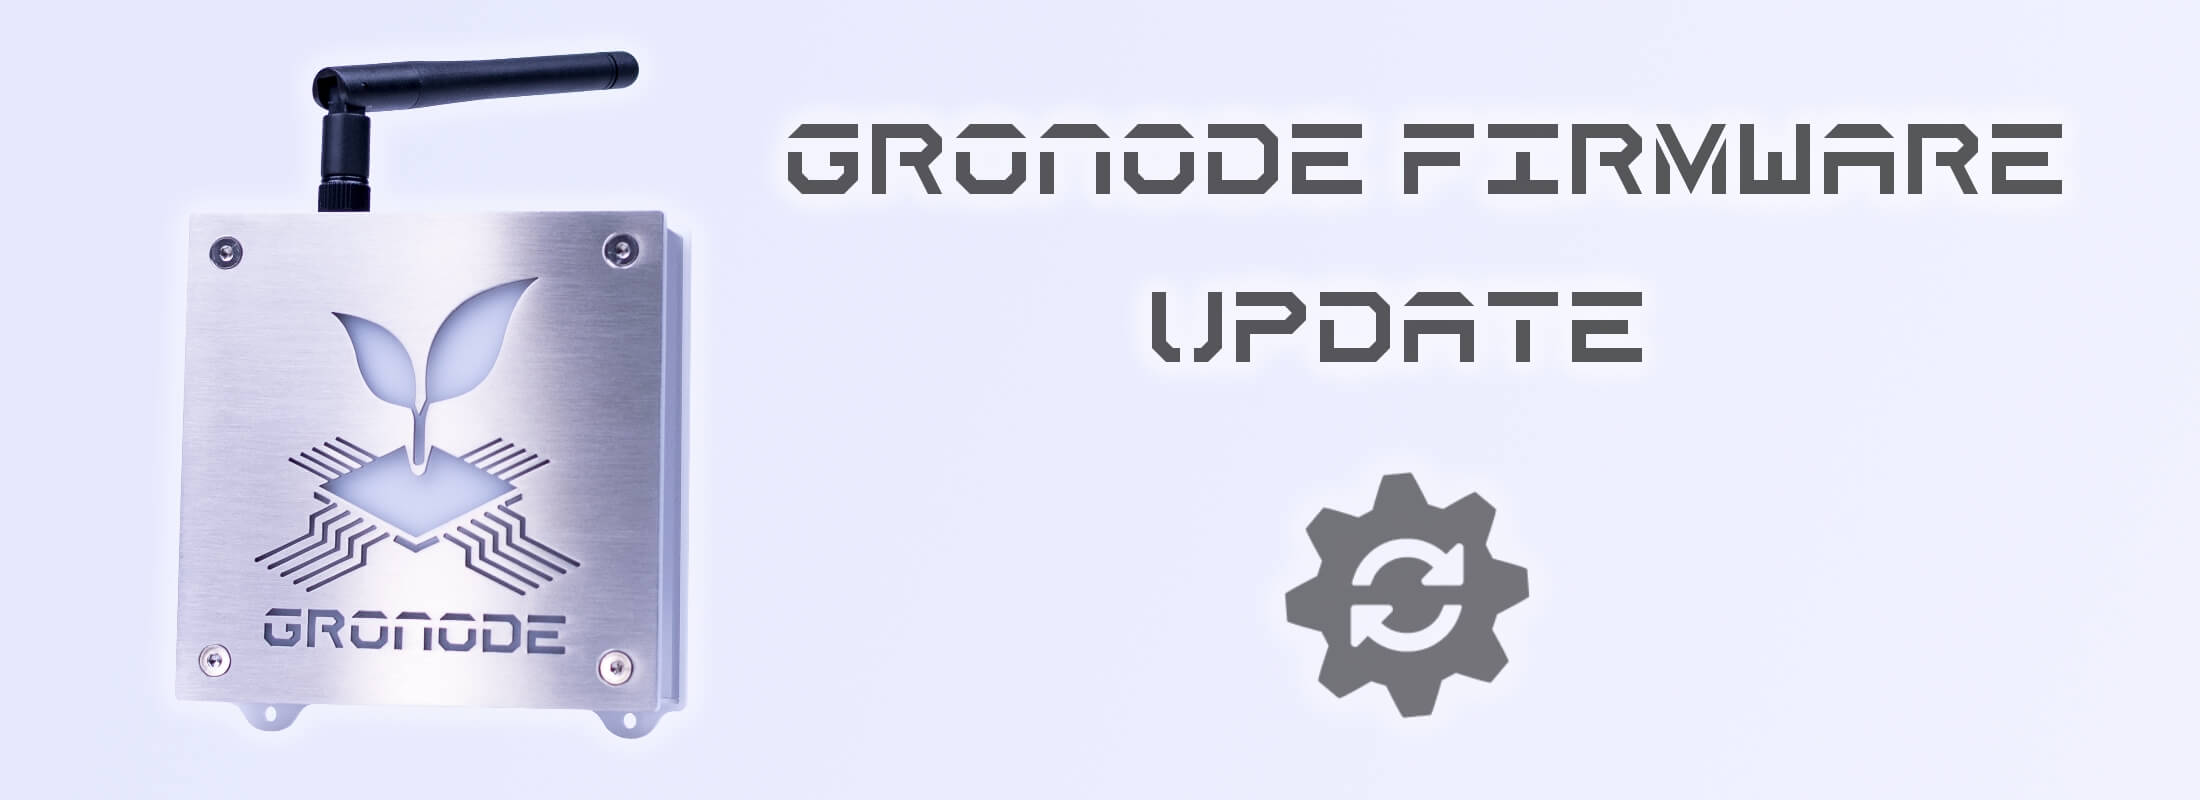 """On the left side a front view of GroNode, the core module (brain) of the GroLab™ grow controller, on the right the text """"GroNode Firmware Update"""" and an update icon"""